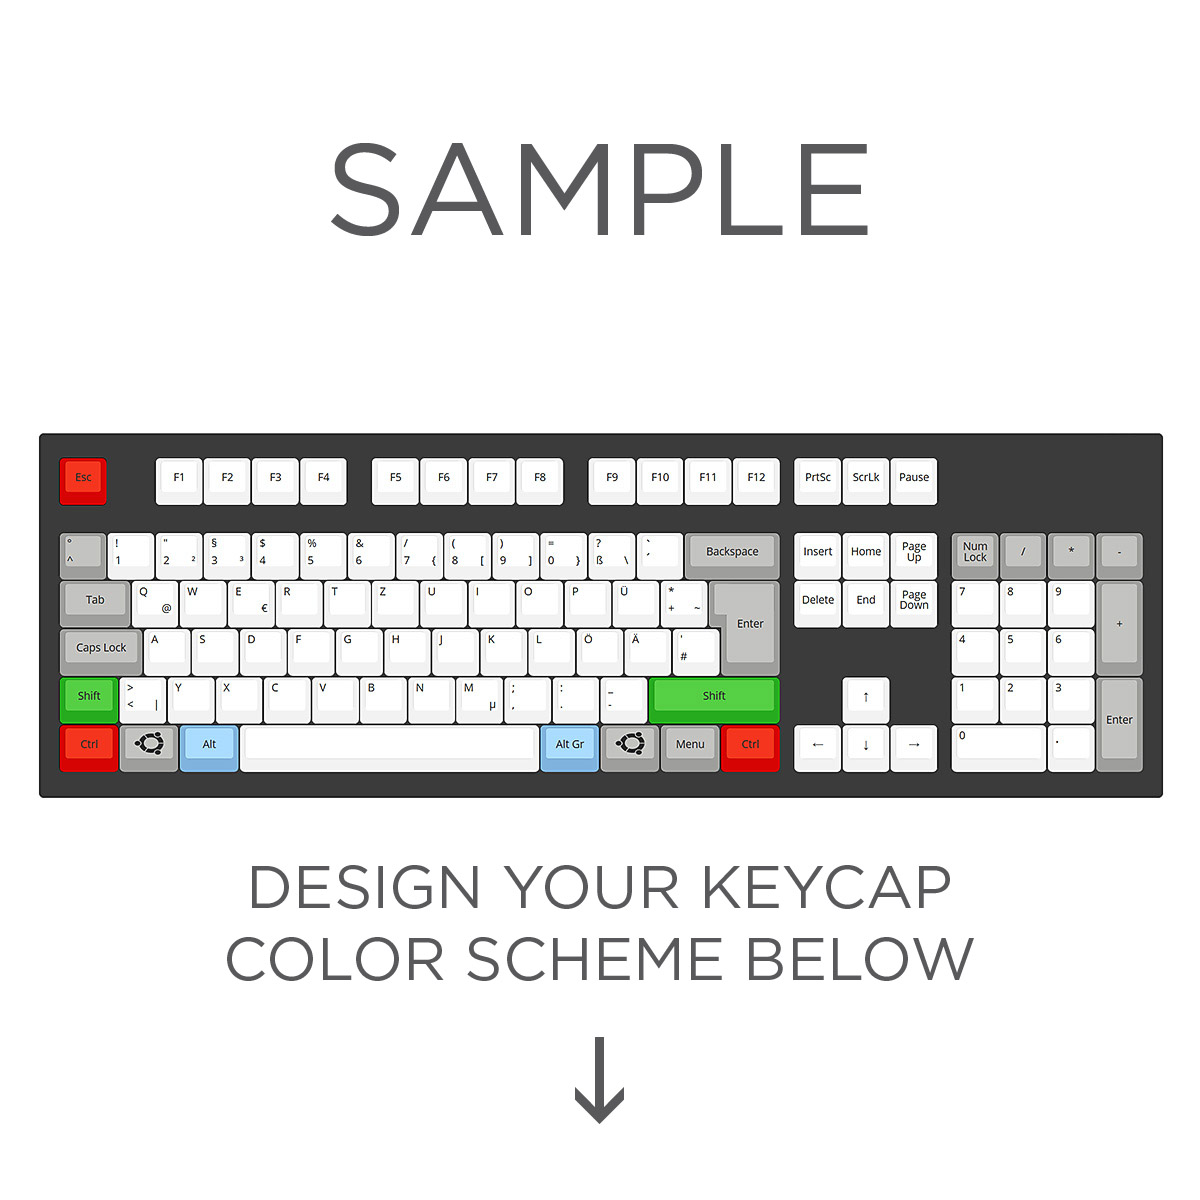 Max keyboard iso layout custom color cherry mx keycap set top max keyboard iso 105 key layout custom color cherry mx full replacement keycap set biocorpaavc Images